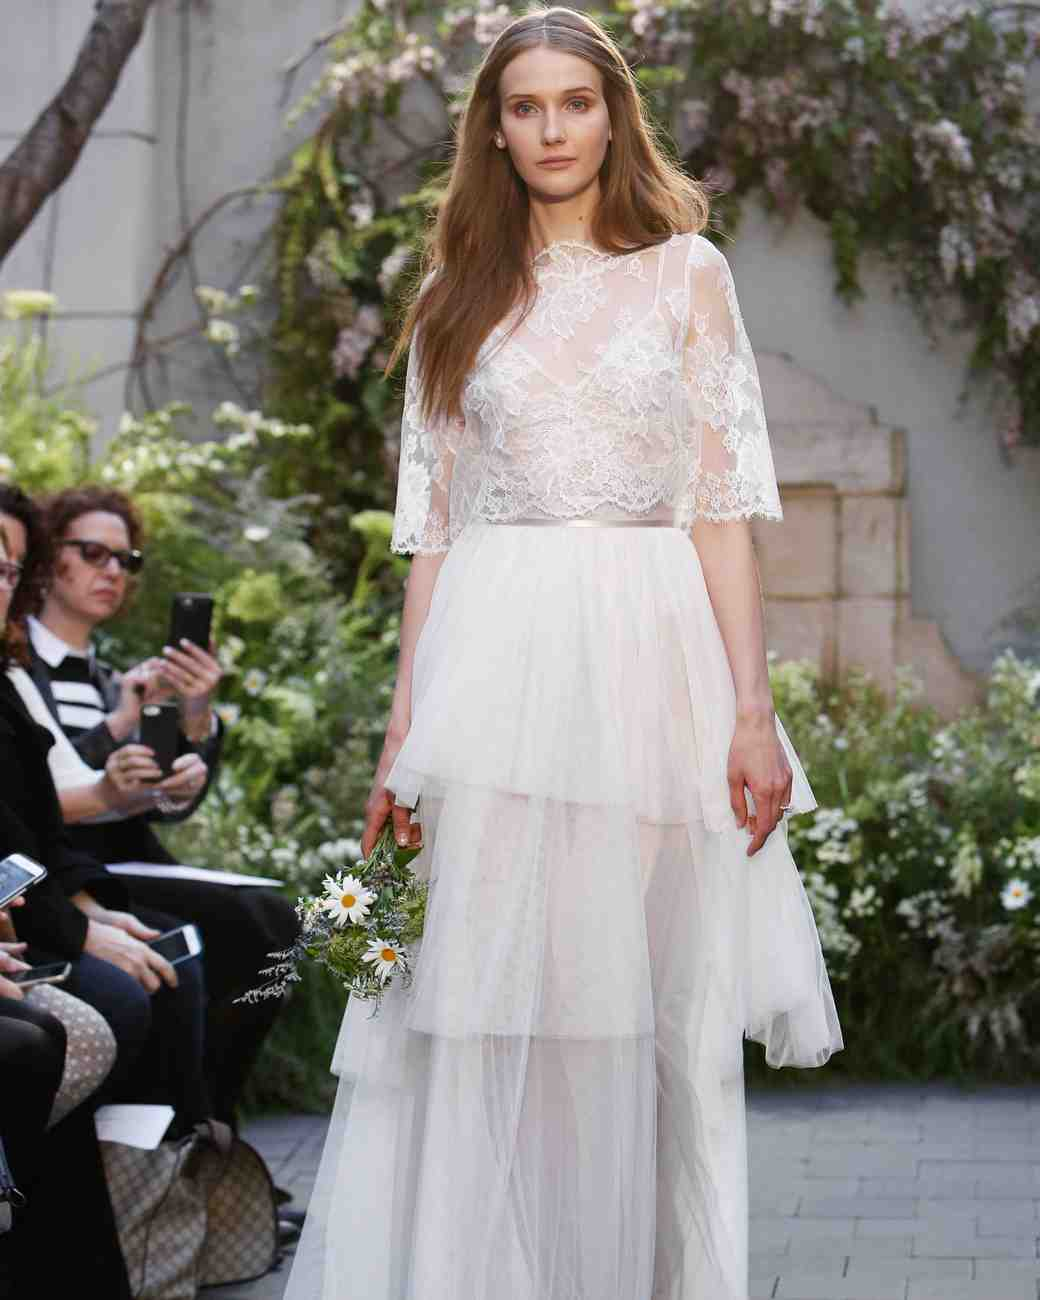 monique-lhuillier-spring2017-d113026-007.jpg